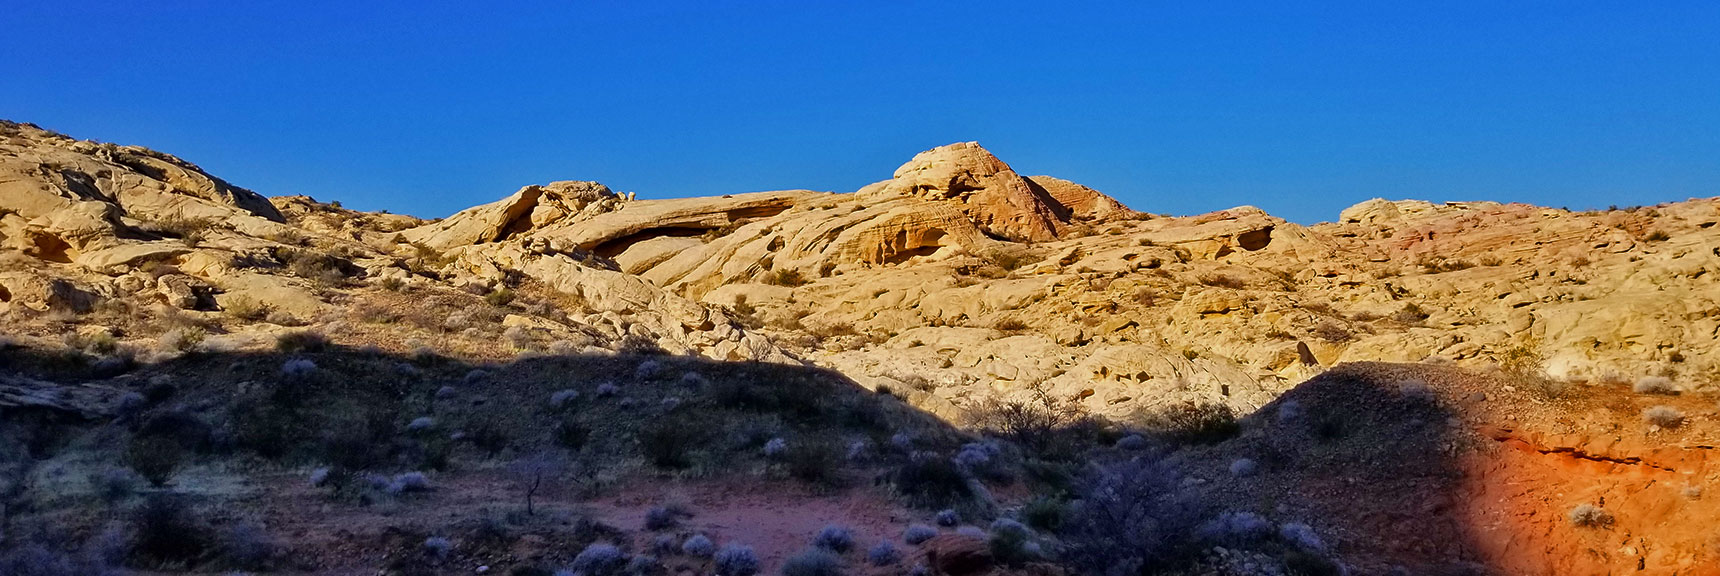 Red Canyon Turning White on the Northern Portion of Prospect Trail in Valley of Fire State Park, Nevada